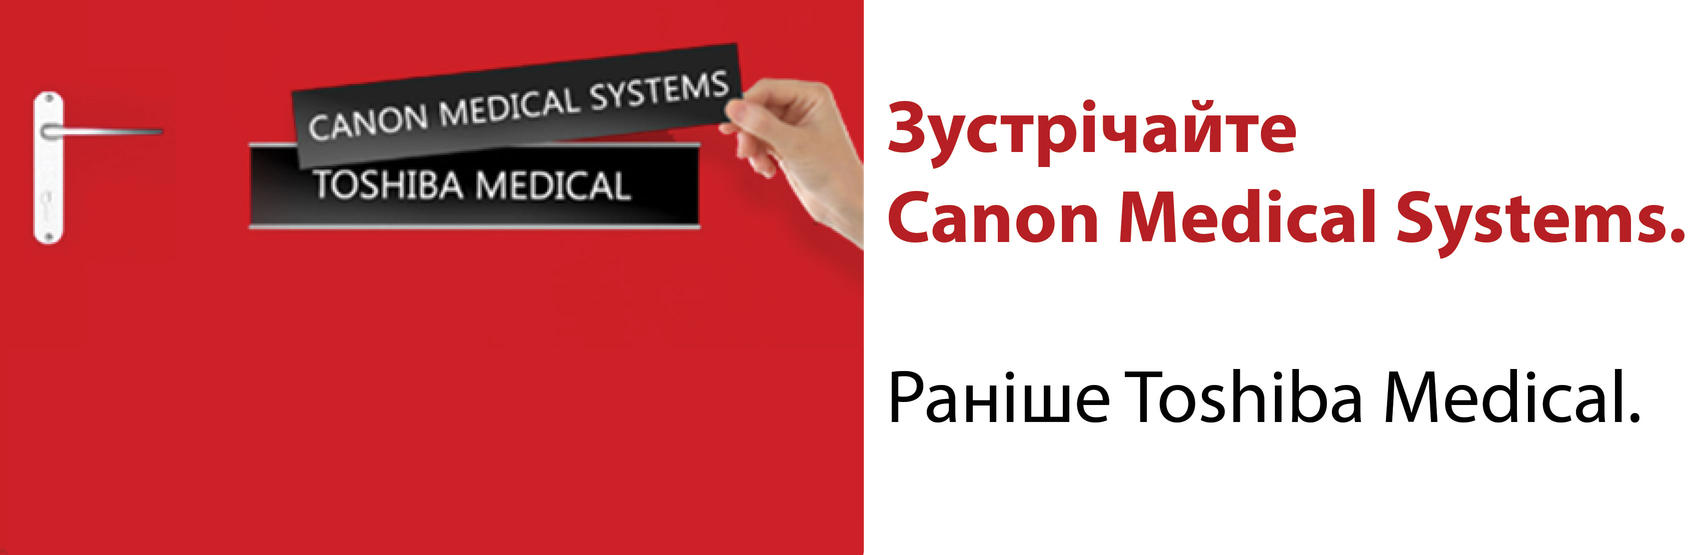 /ua/novosti-i-meropriyatiya/novini/kompanya-canon-ogoloshu-pro-zmnu-korporativno-nazvi-korporac-toshiba-medical-systems-corporation-na-canon-medical-systems-corporation/